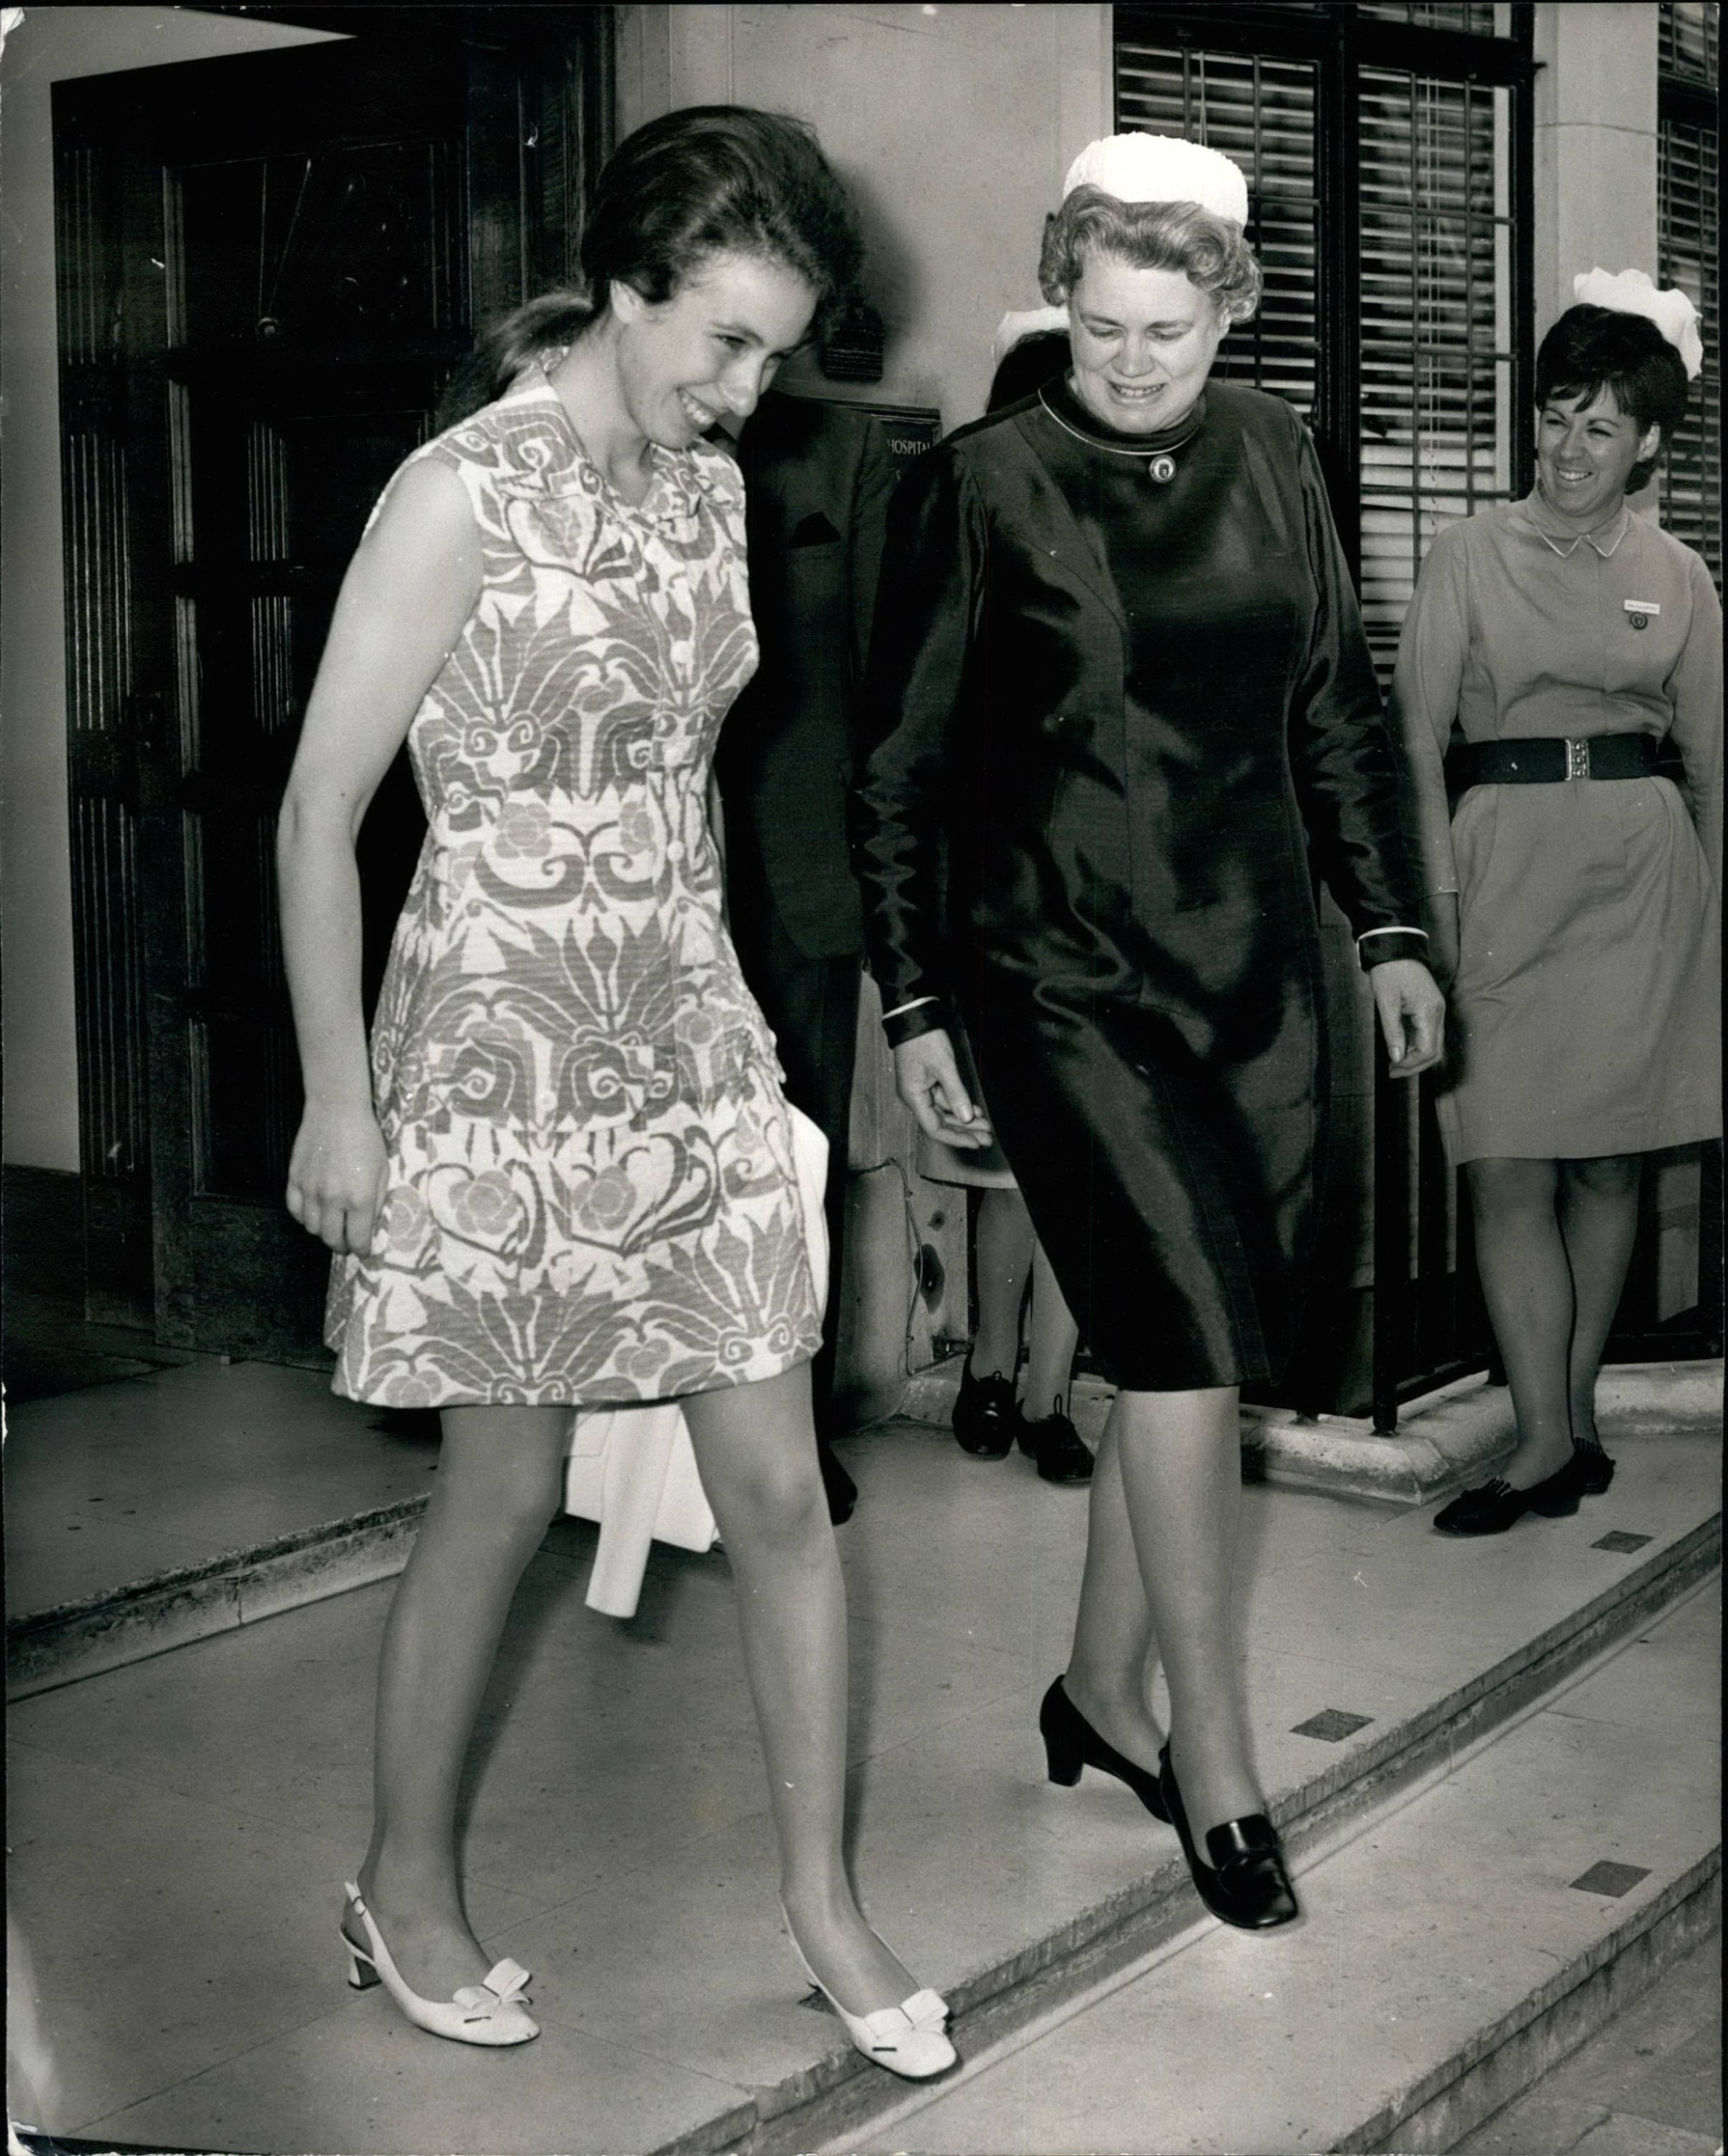 Jul. 07, 1971 - PRINCESS ANNE LEAVES HOSPITAL PRINCESS ANNE Ieft the King Edward .11 Hospital for Officers today,10 days after an operation for the removal of an inflamed overian cyst. Prince Charles and Prince Edward went to the Hospital to driver her to Windsor were she will spend the weekend with the Royal Filly, PHOTO SHOWS PRINCESS ANNE seen leaving the hospital this Morning with the Matron,Image: 209825707, License: Rights-managed, Restrictions: , Model Release: no, Credit line: Keystone Pictures USA / Zuma Press / Profimedia